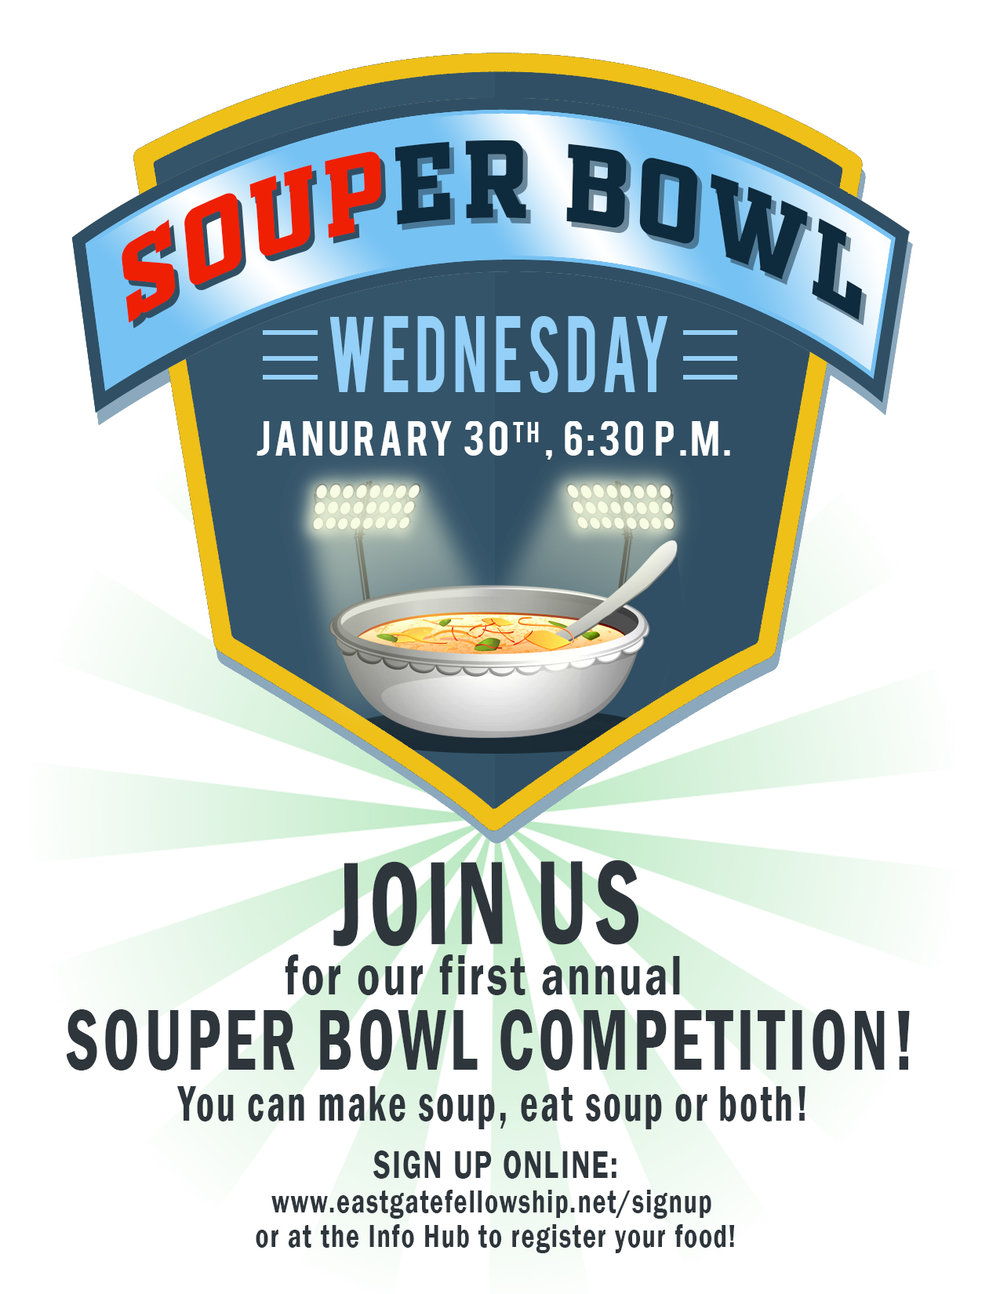 souperbowl wednesday - flyer.jpg